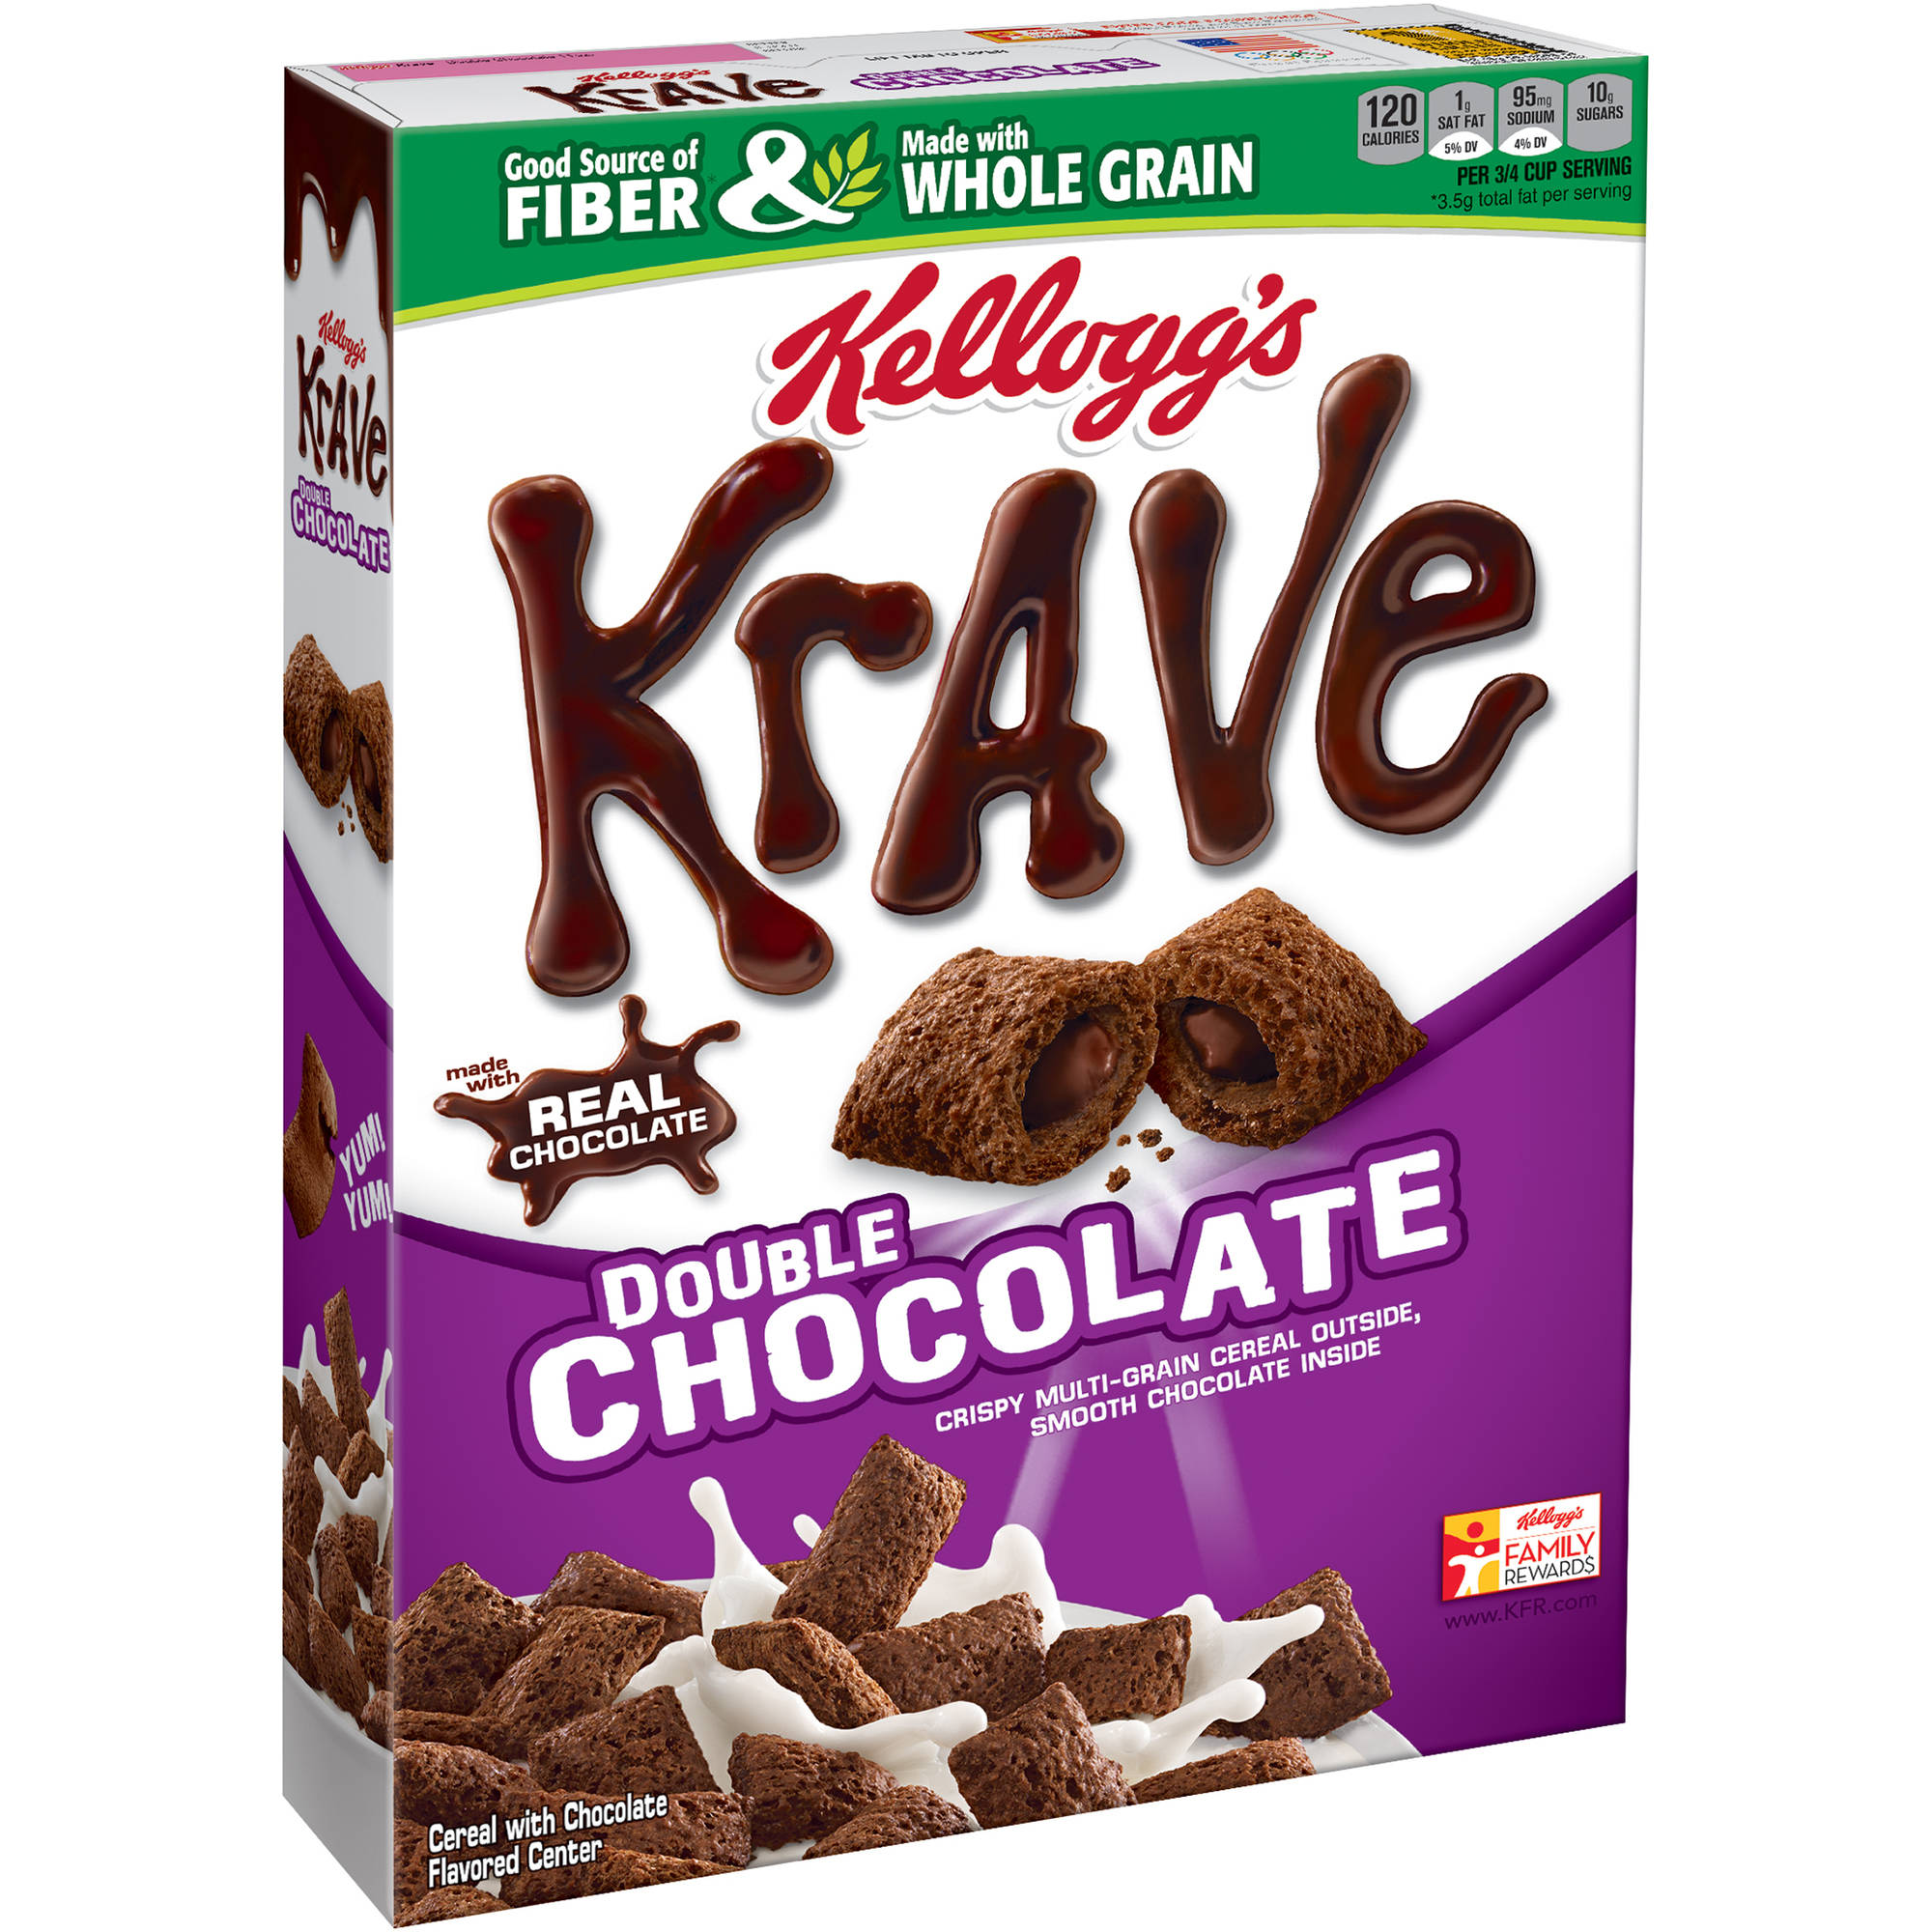 Kellogg's Krave Double Chocolate Cereal, 11 ounce box